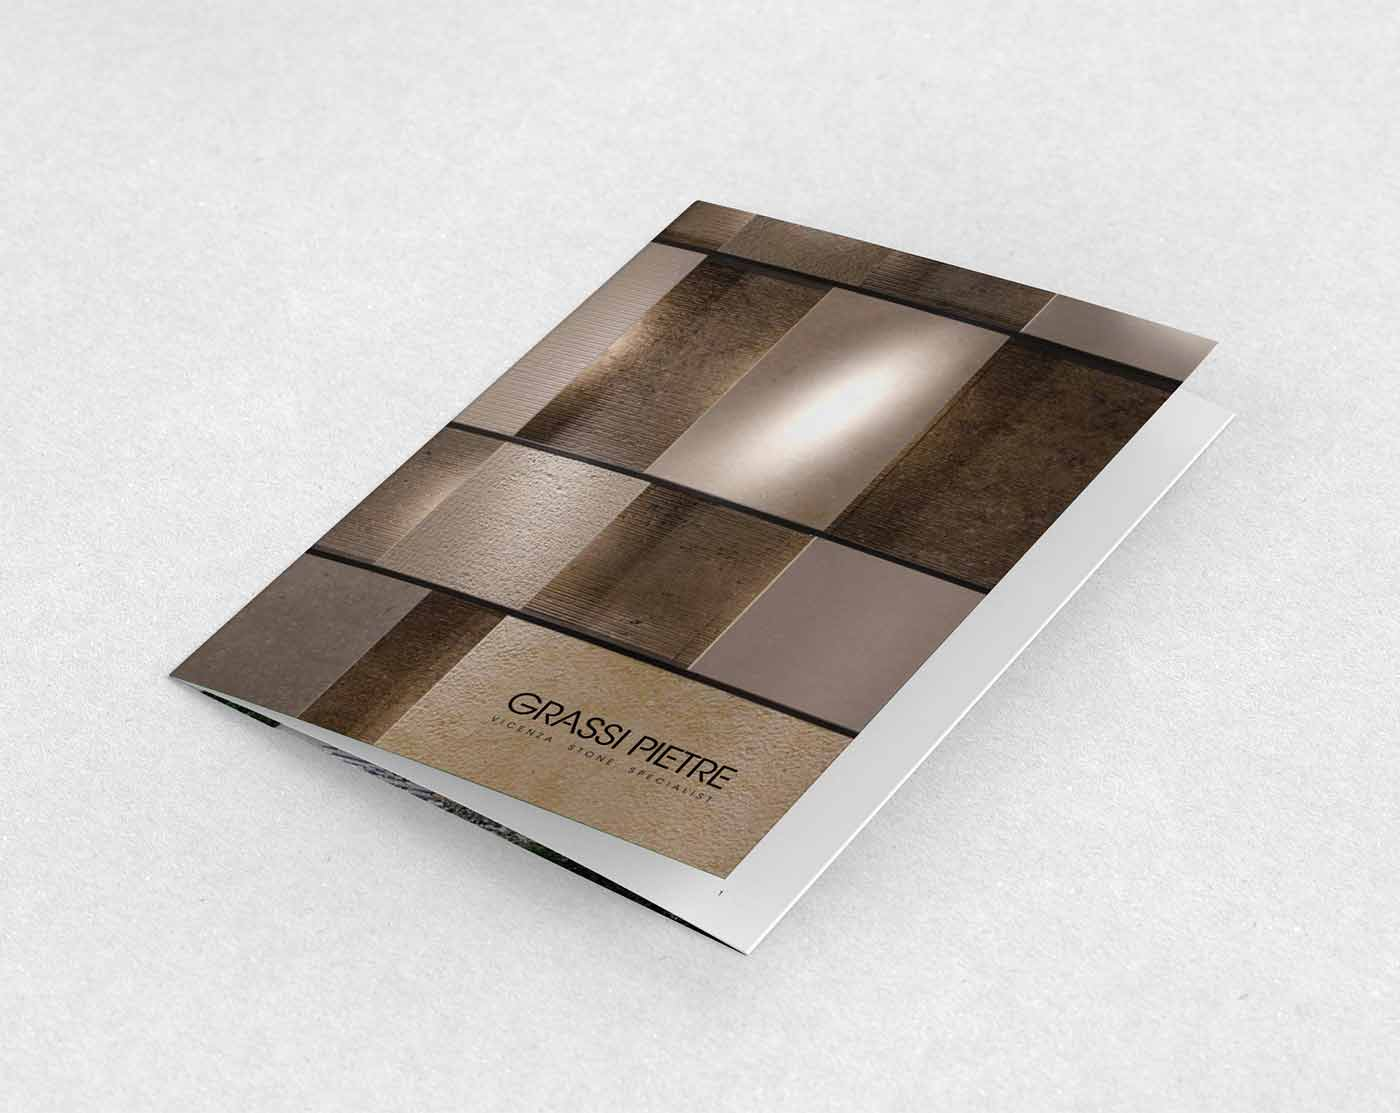 Download the new Grassi Pietre catalogue and be inspired